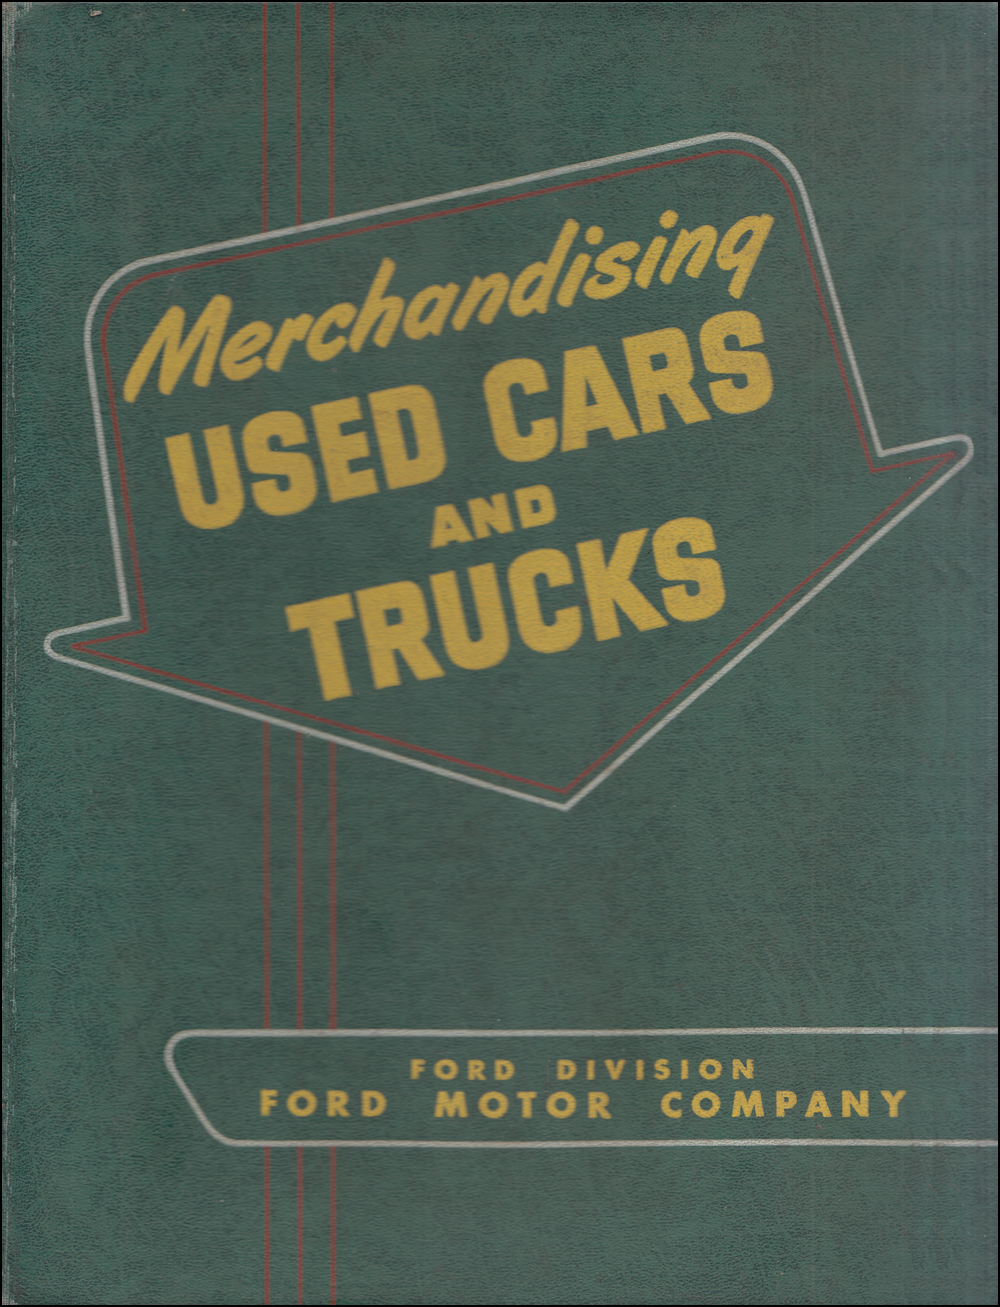 1950-1951 Ford Used Car Merchandising Dealer Album Original